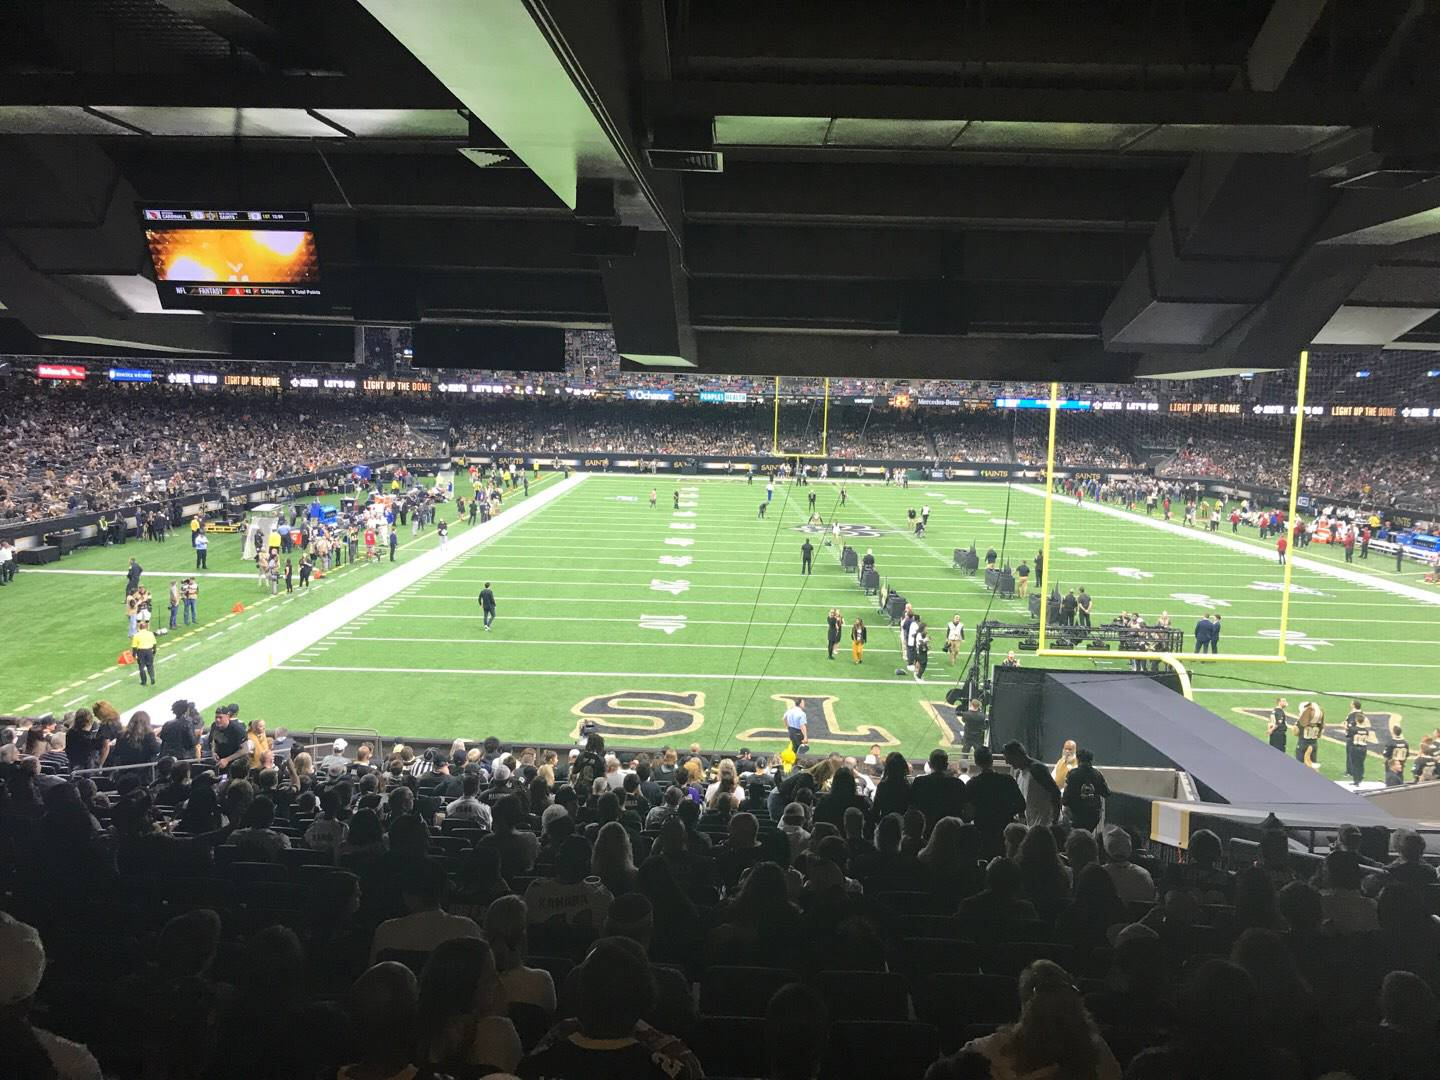 Mercedes-Benz Superdome Section 129 Row 26 Seat 9